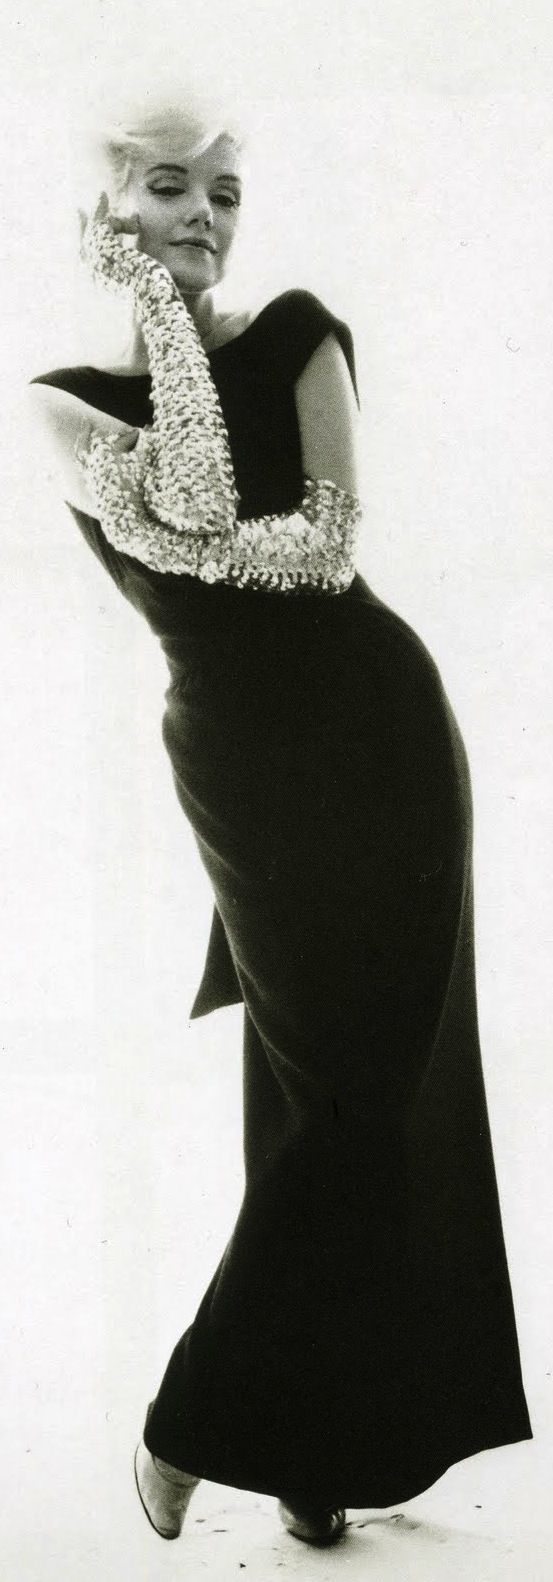 Marilyn Monroe - The Last Sitting - June 1962 for Vogue by Bert Stern | The House of Beccaria